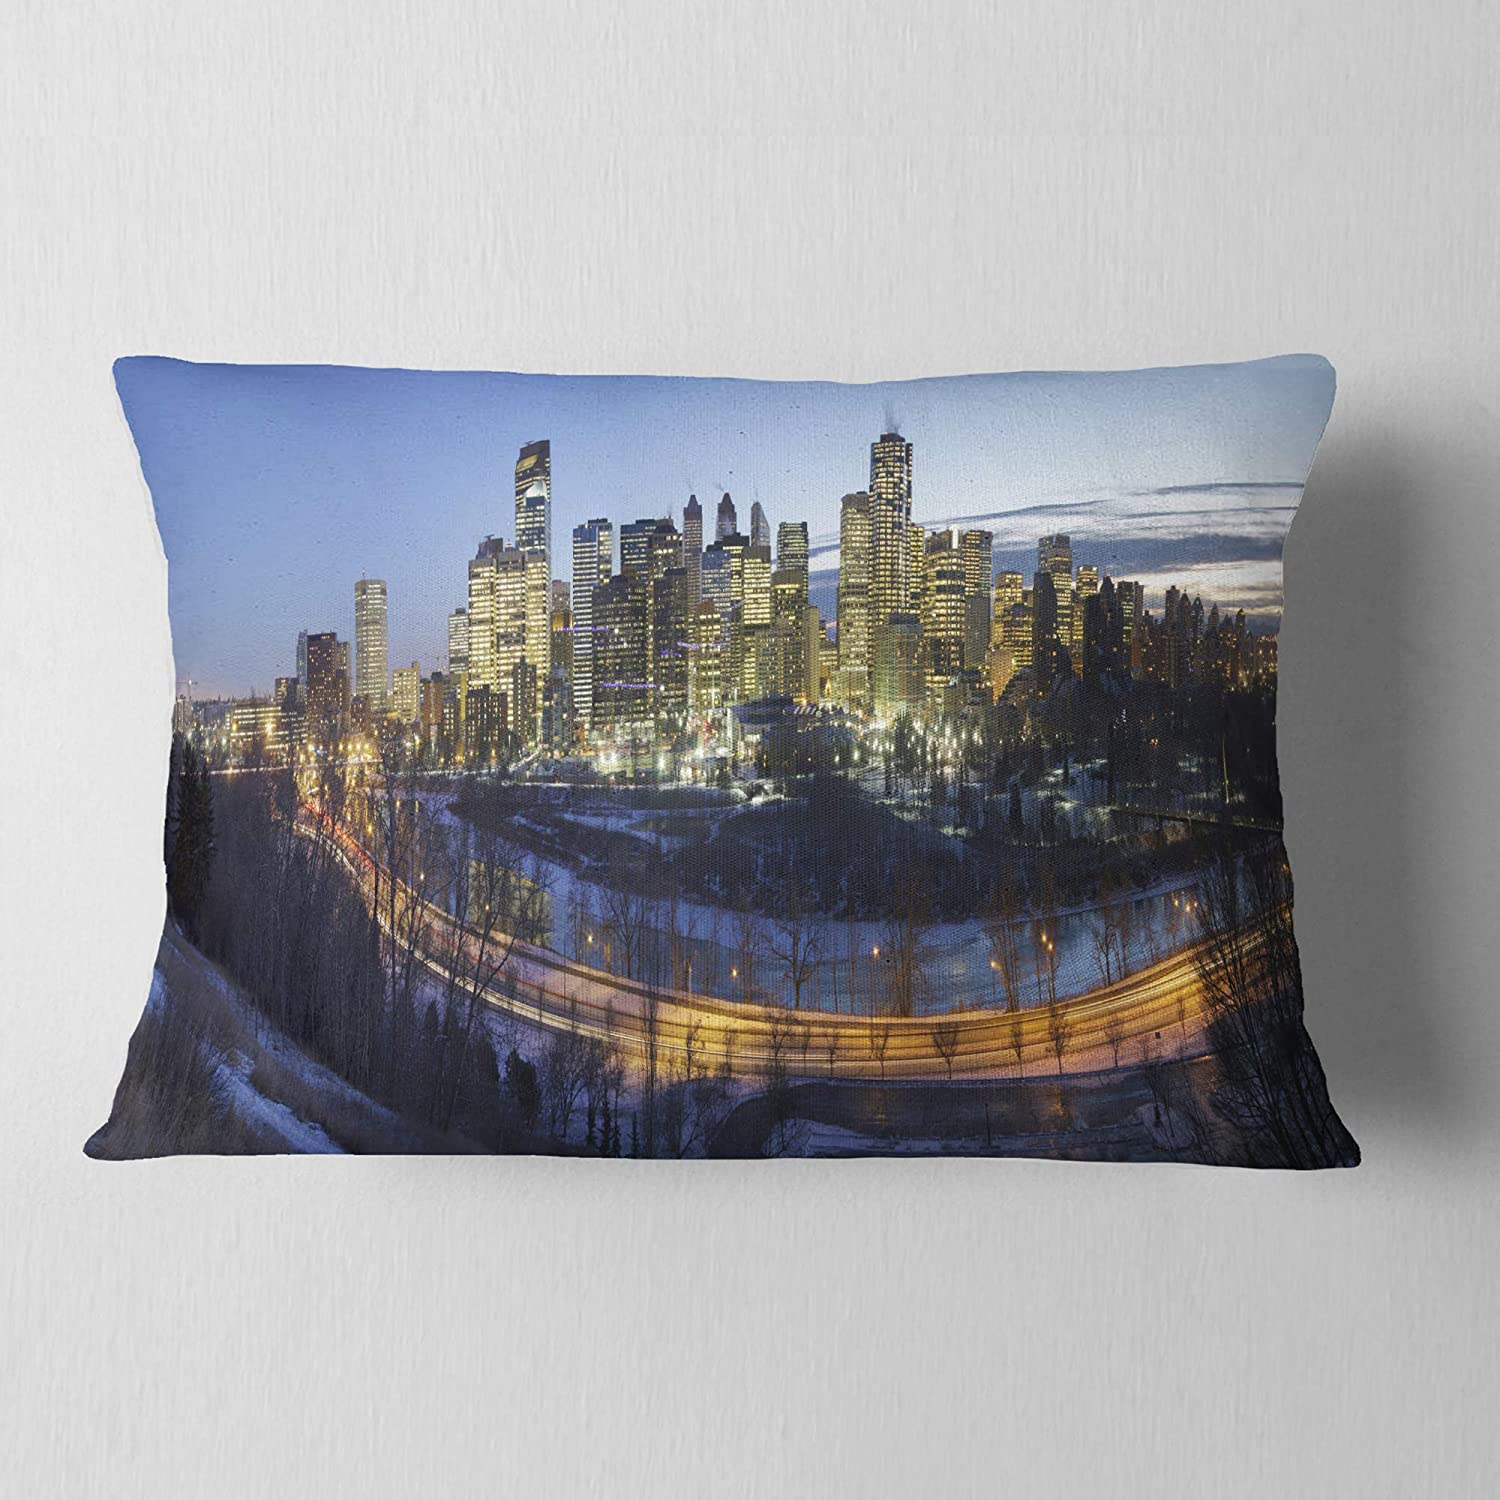 in Insert Printed On Both Side Designart CU7364-12-20 Downtown Calgary Cityscape Photo Lumbar Cushion Cover for Living Room x 20 in Sofa Throw Pillow 12 in